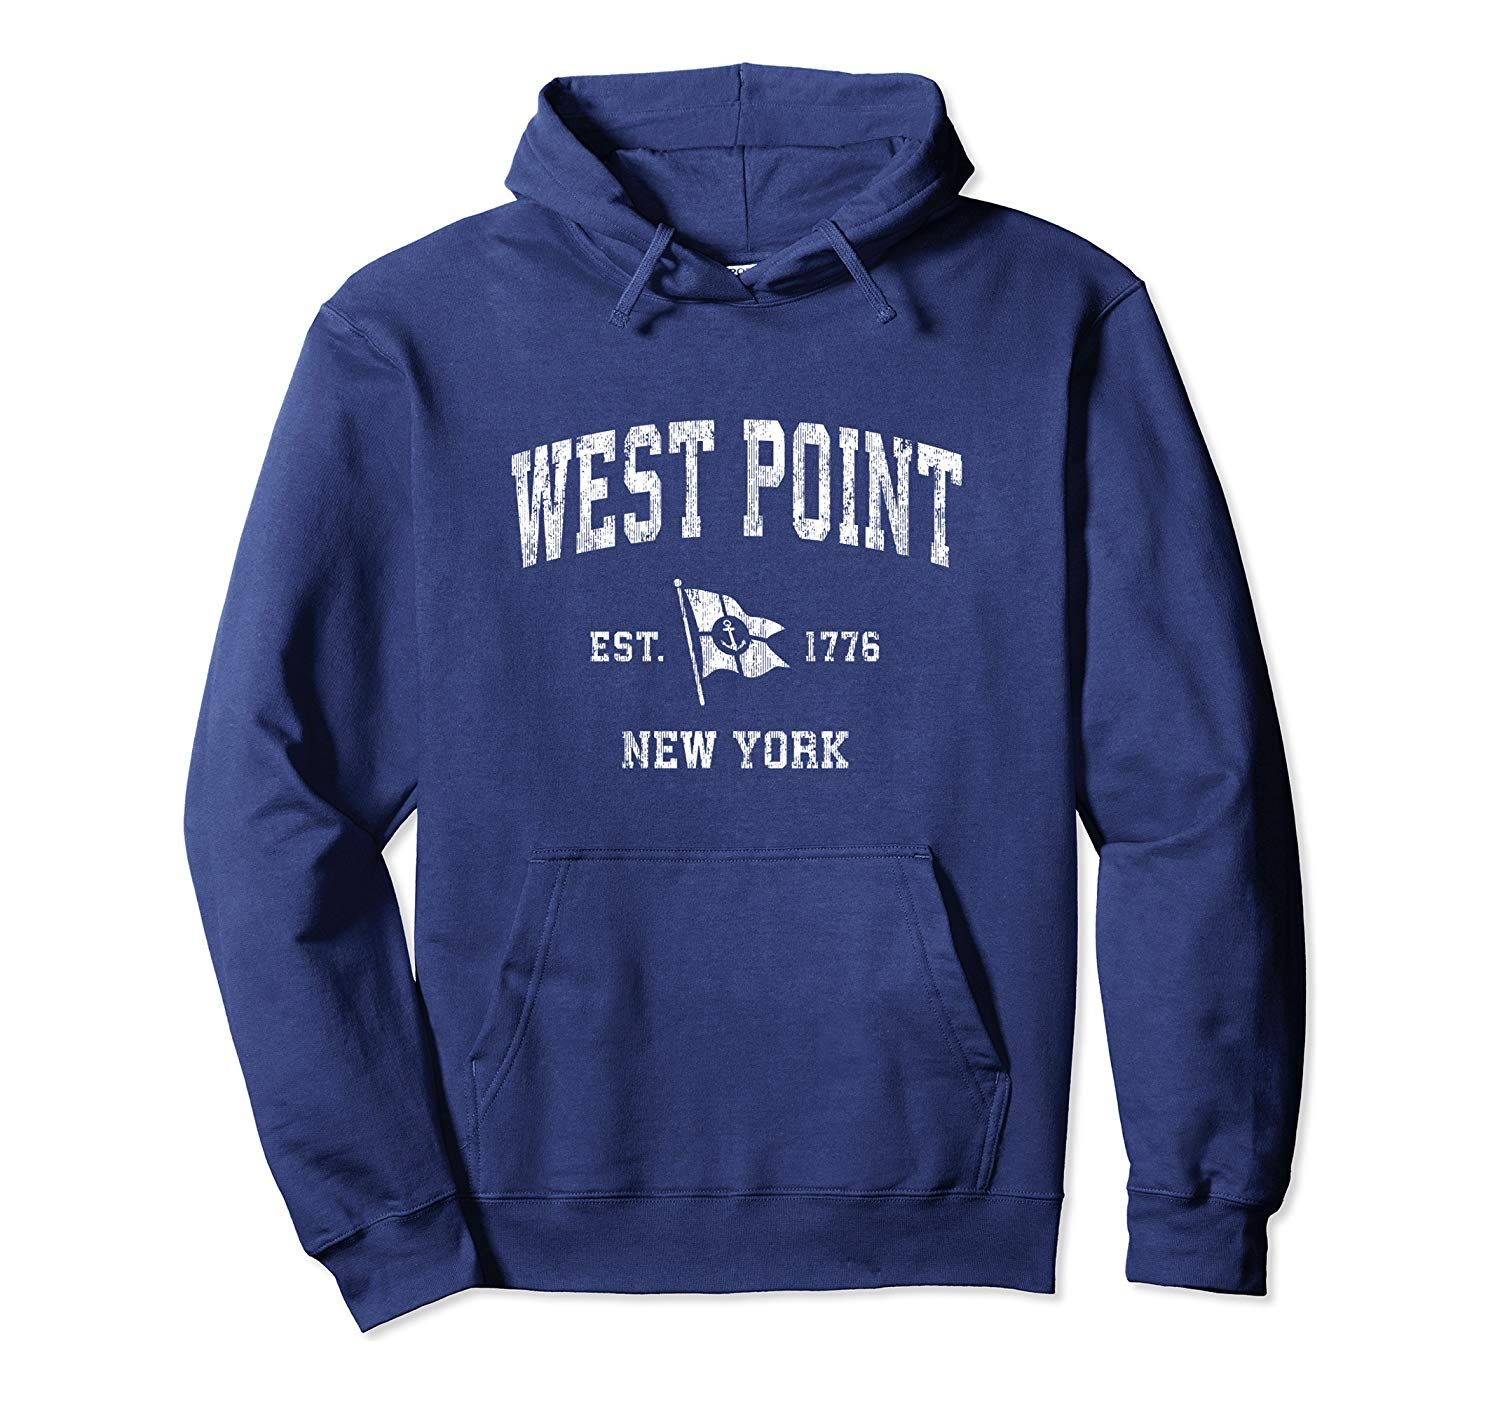 West Point NY Vintage Nautical Boat Anchor Flag Sports Pullover Hoodie #grandpagifts